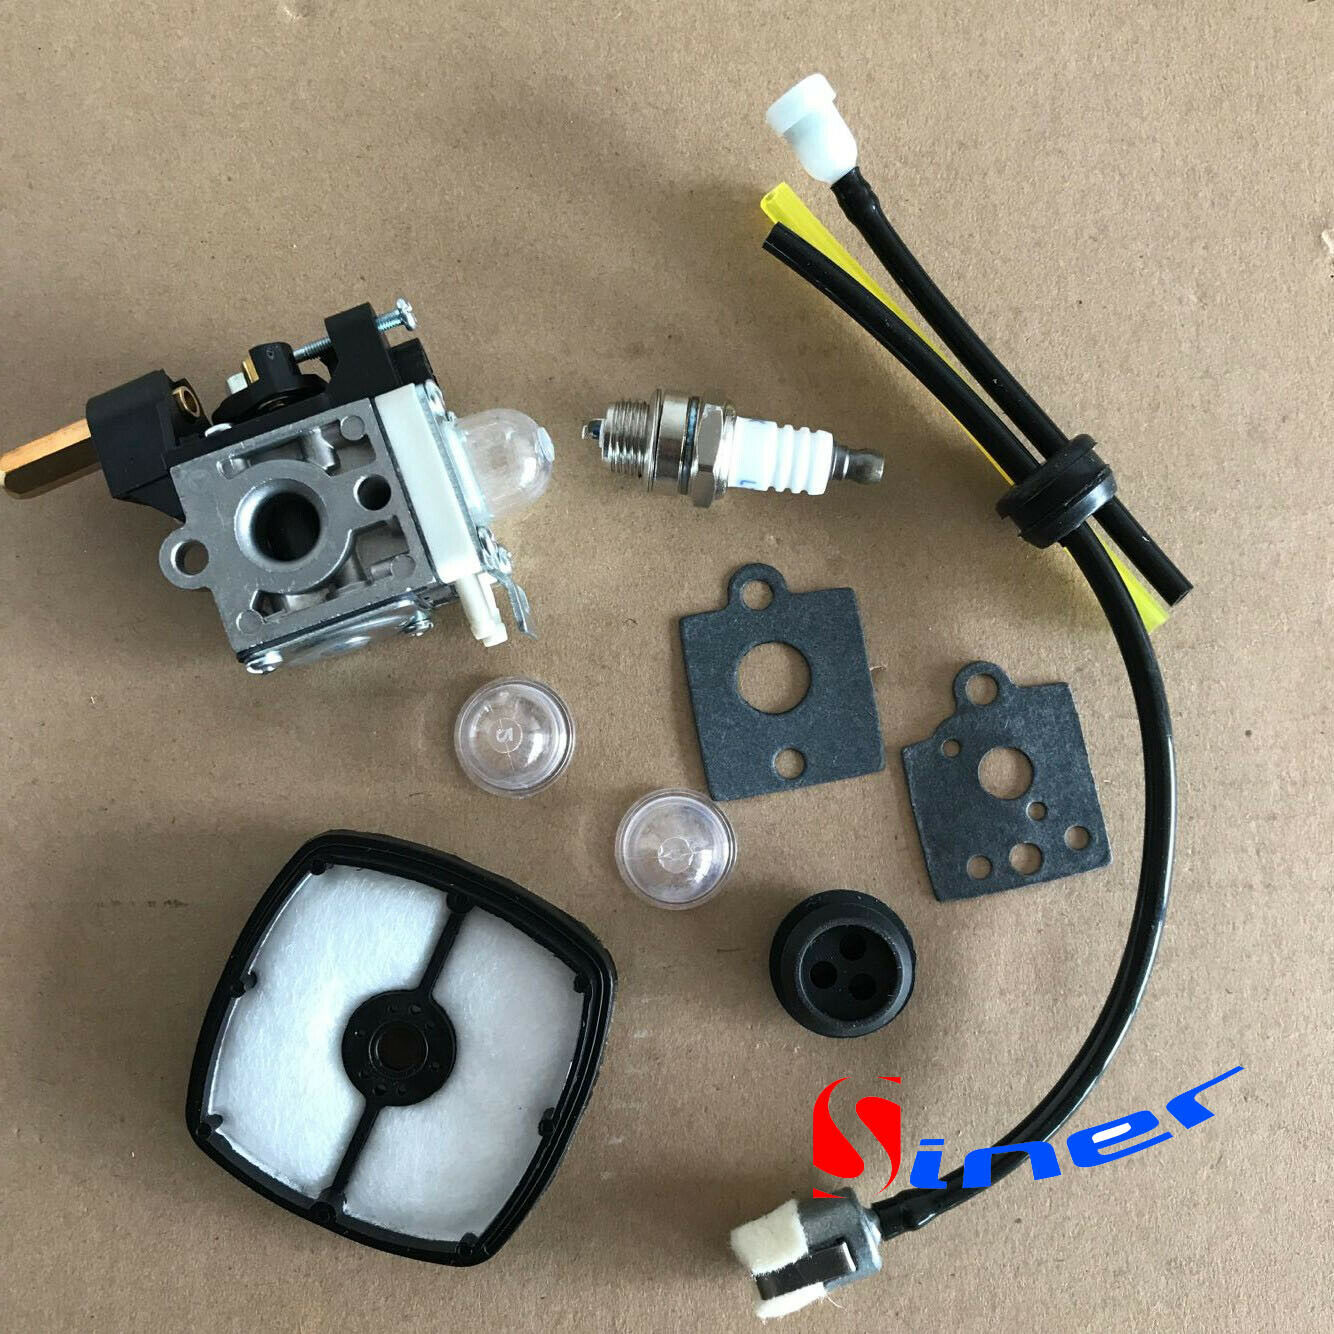 Primary image for Carburetor Carb For RB-K70 RB-K70A ECHO SRM200 SRM201 SRM230 SRM210 trimmer